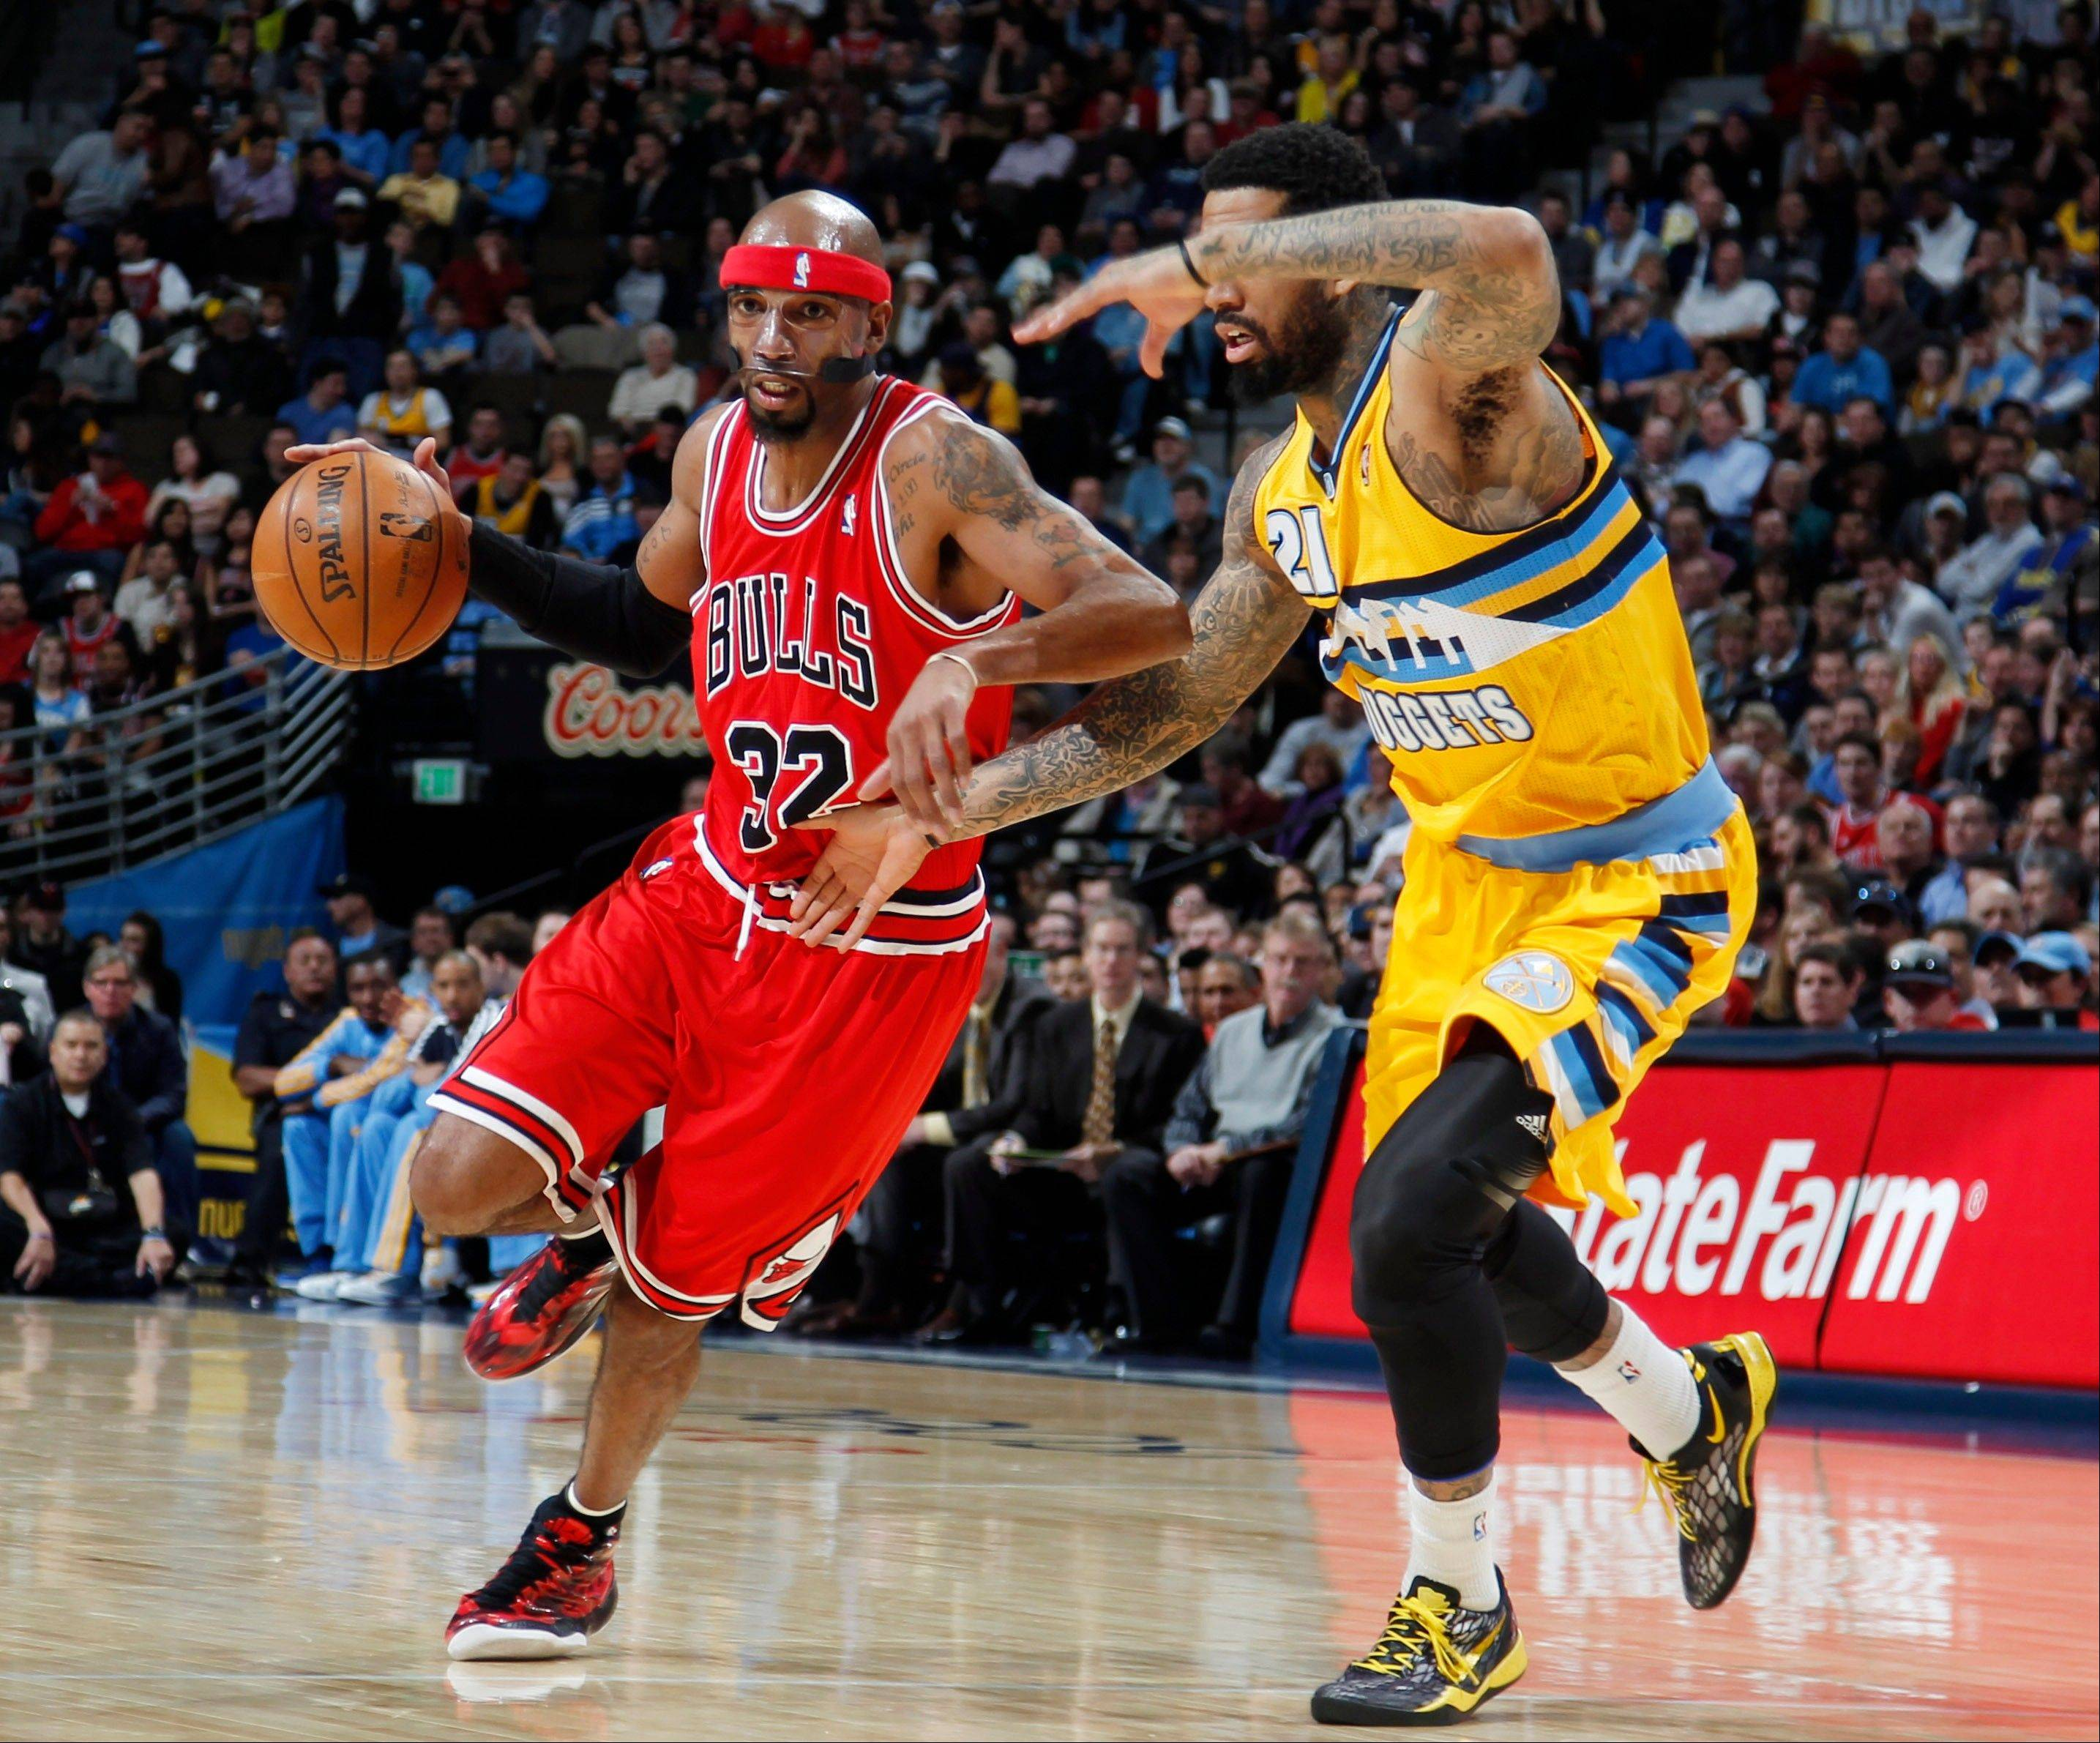 Chicago Bulls guard Richard Hamilton, left, works ball inside past Denver Nuggets forward Wilson Chandler in the first quarter of an NBA basketball game in Denver on Thursday, Feb. 7, 2013. (AP Photo/David Zalubowski)